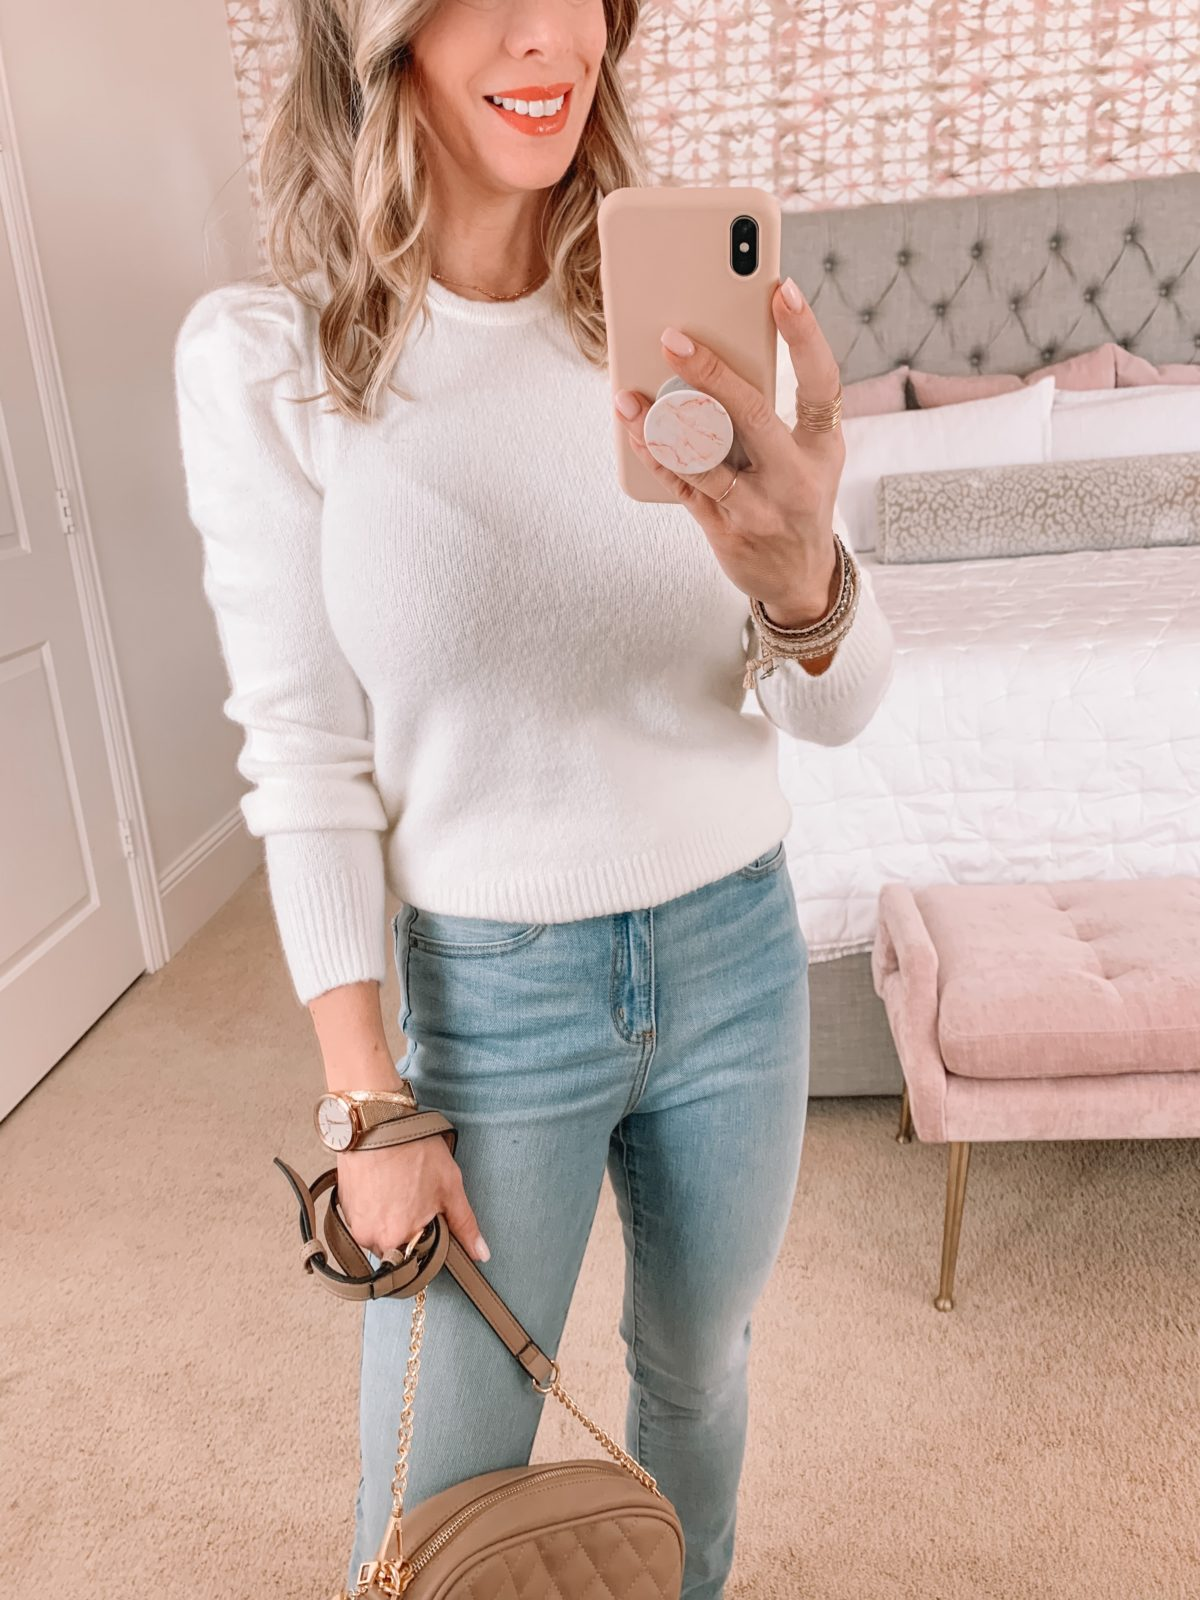 Amazon Fashion Faves, White Puff Sleeve Top, Jeans, Heels, Crossbody